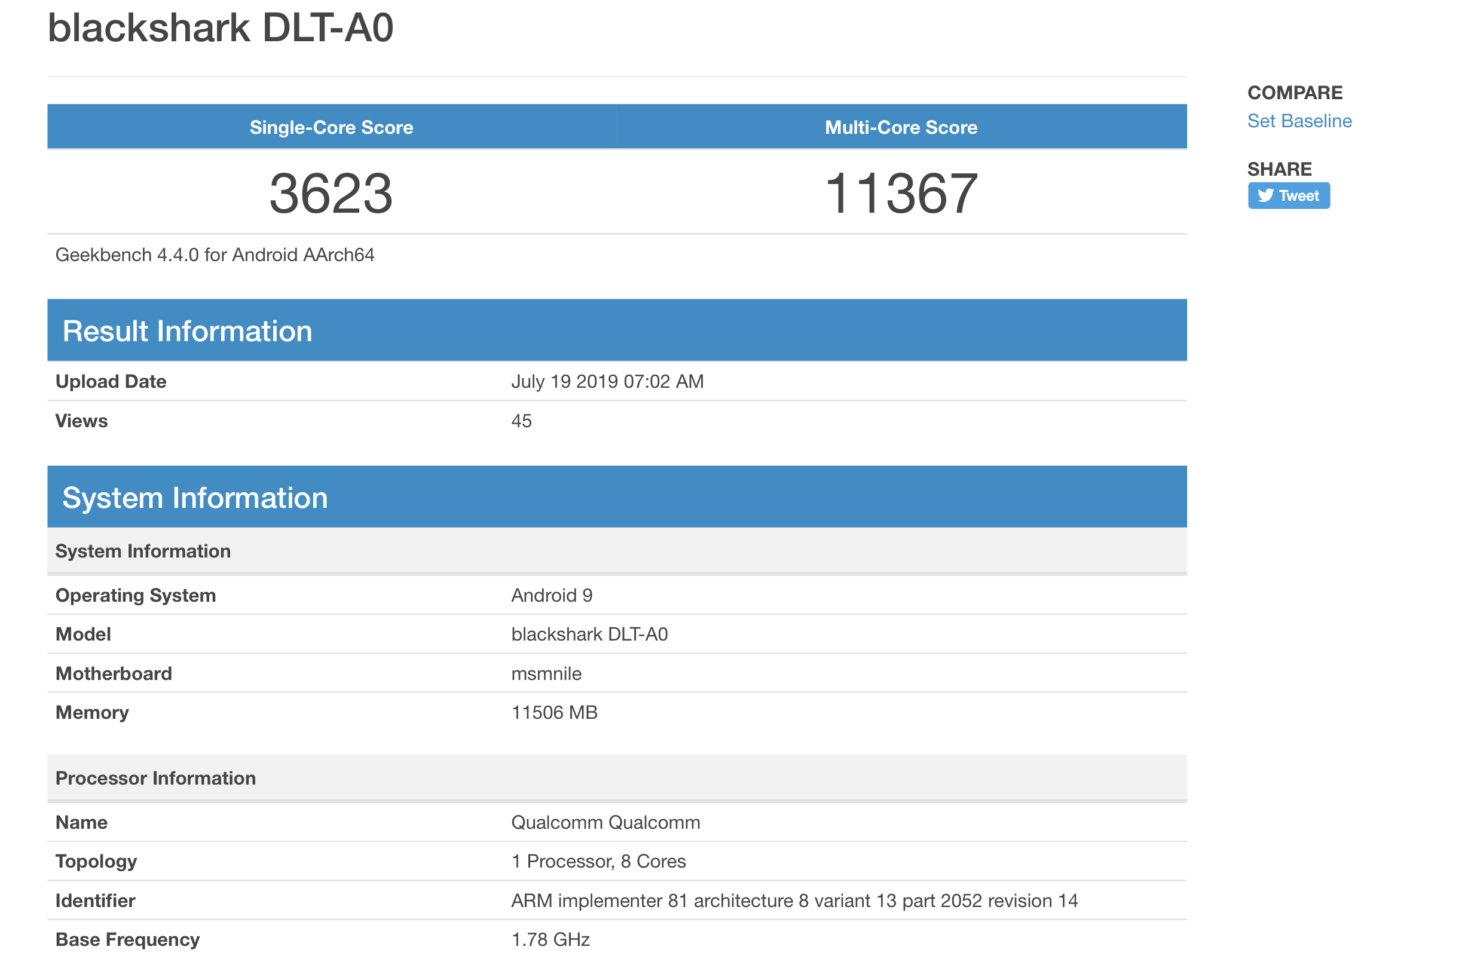 Galaxy Note 10 Snapdragon 855 benchmarks